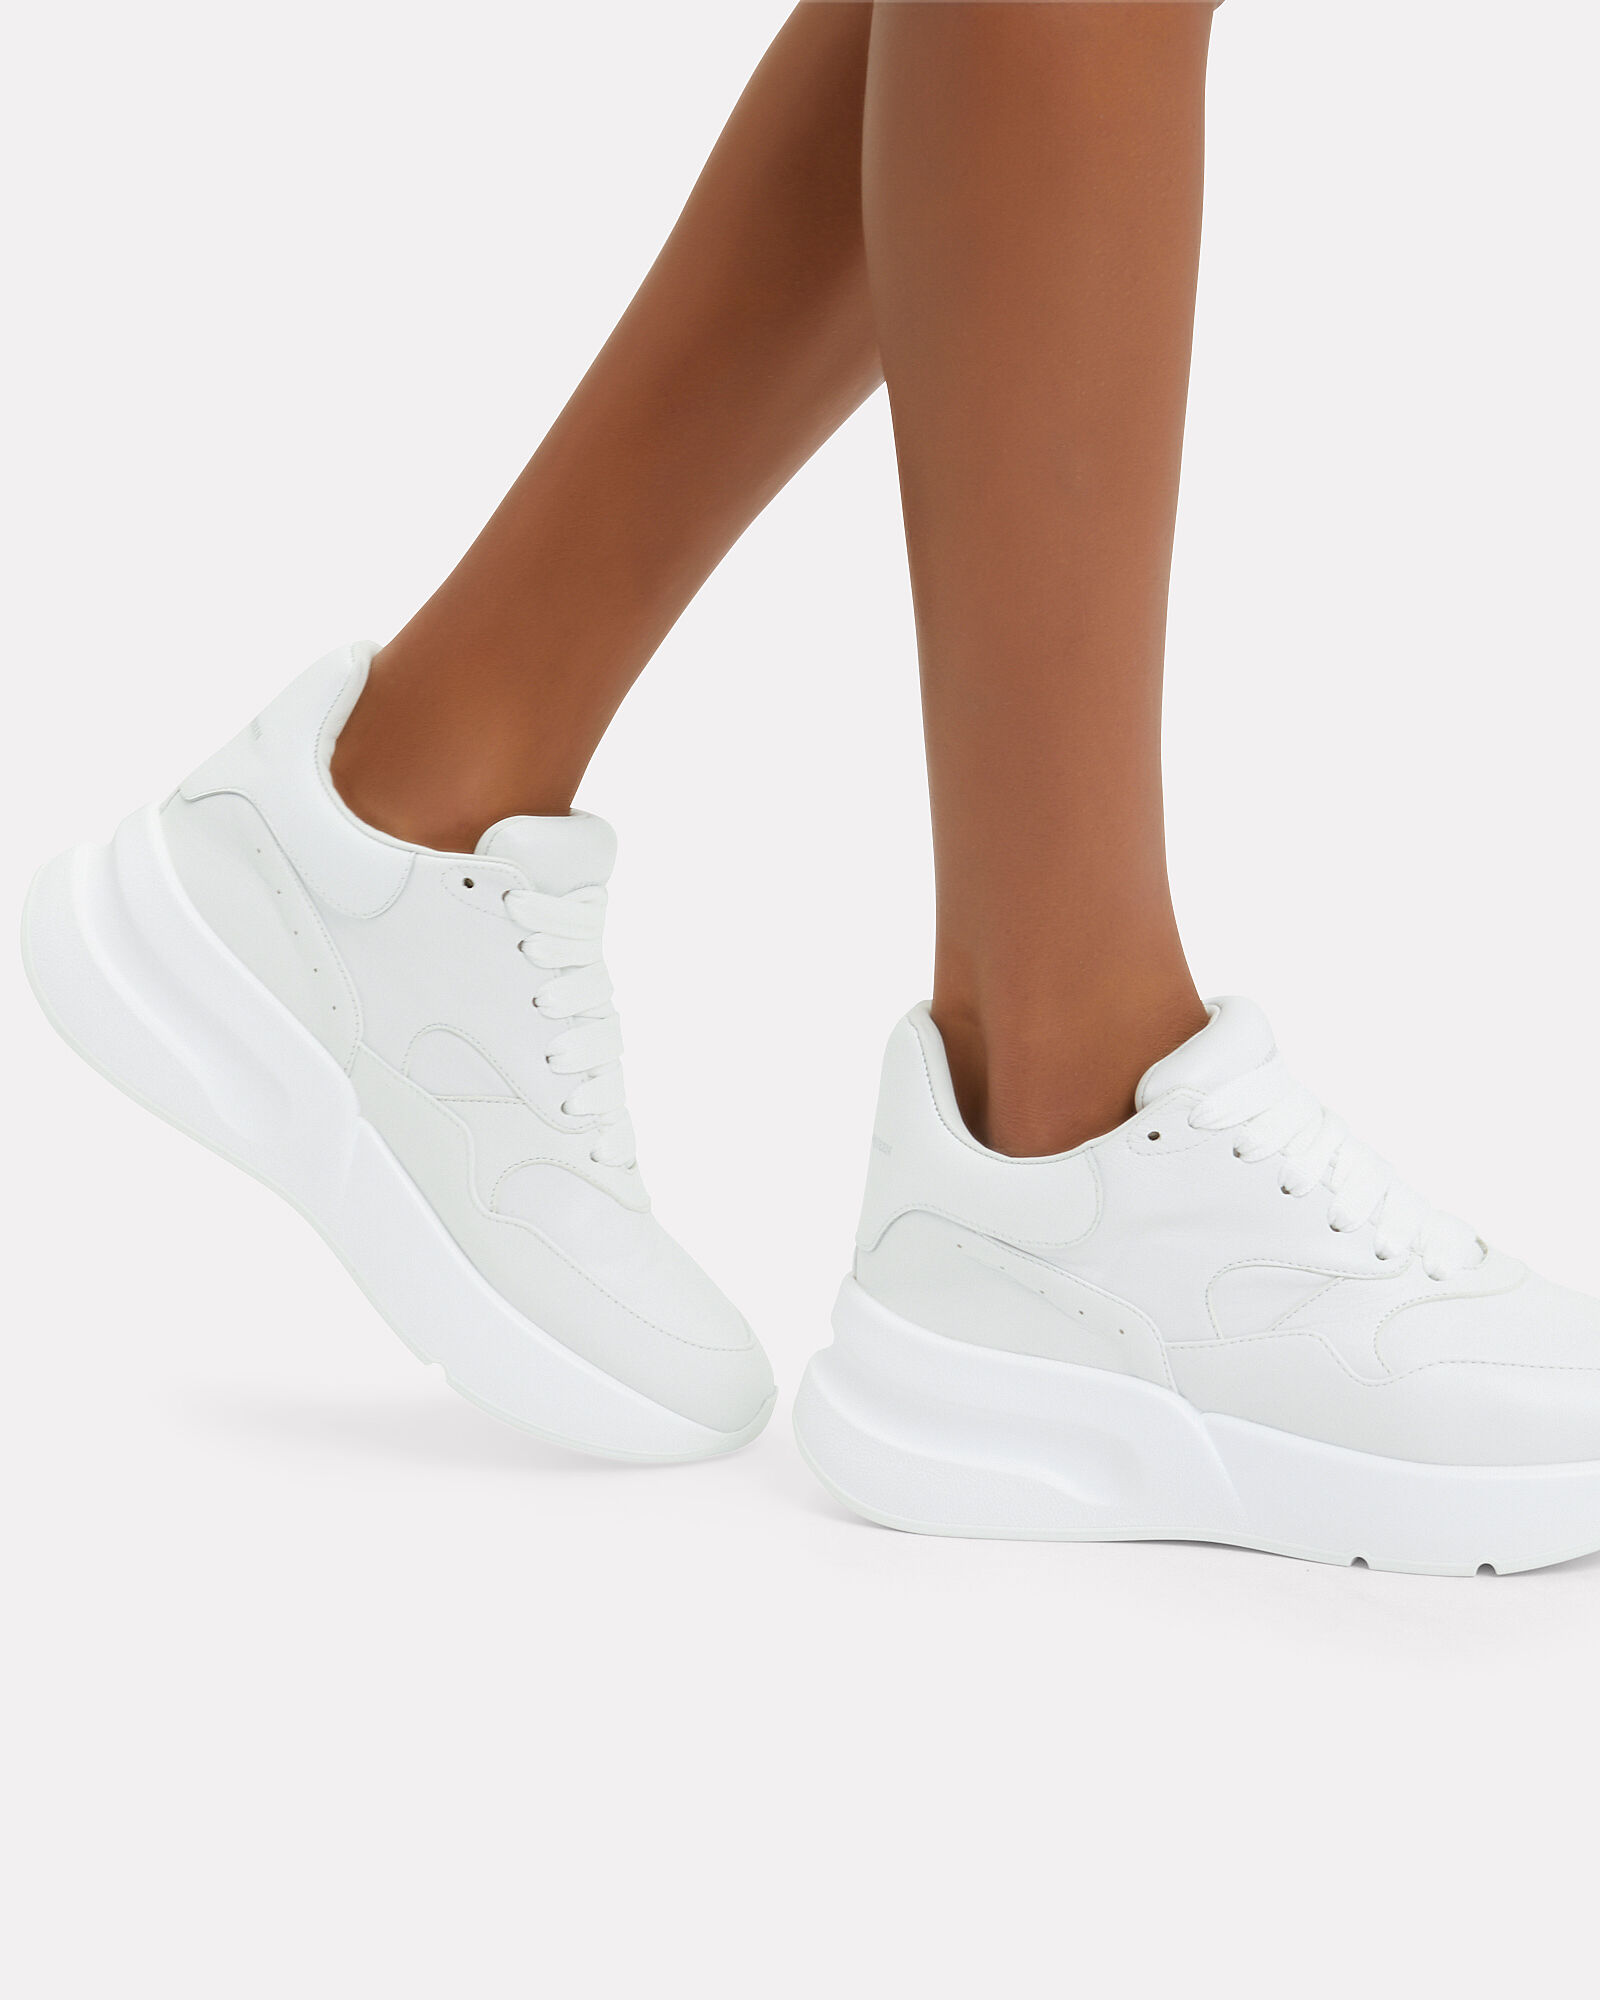 Oversized Runner Sneakers, WHITE, hi-res